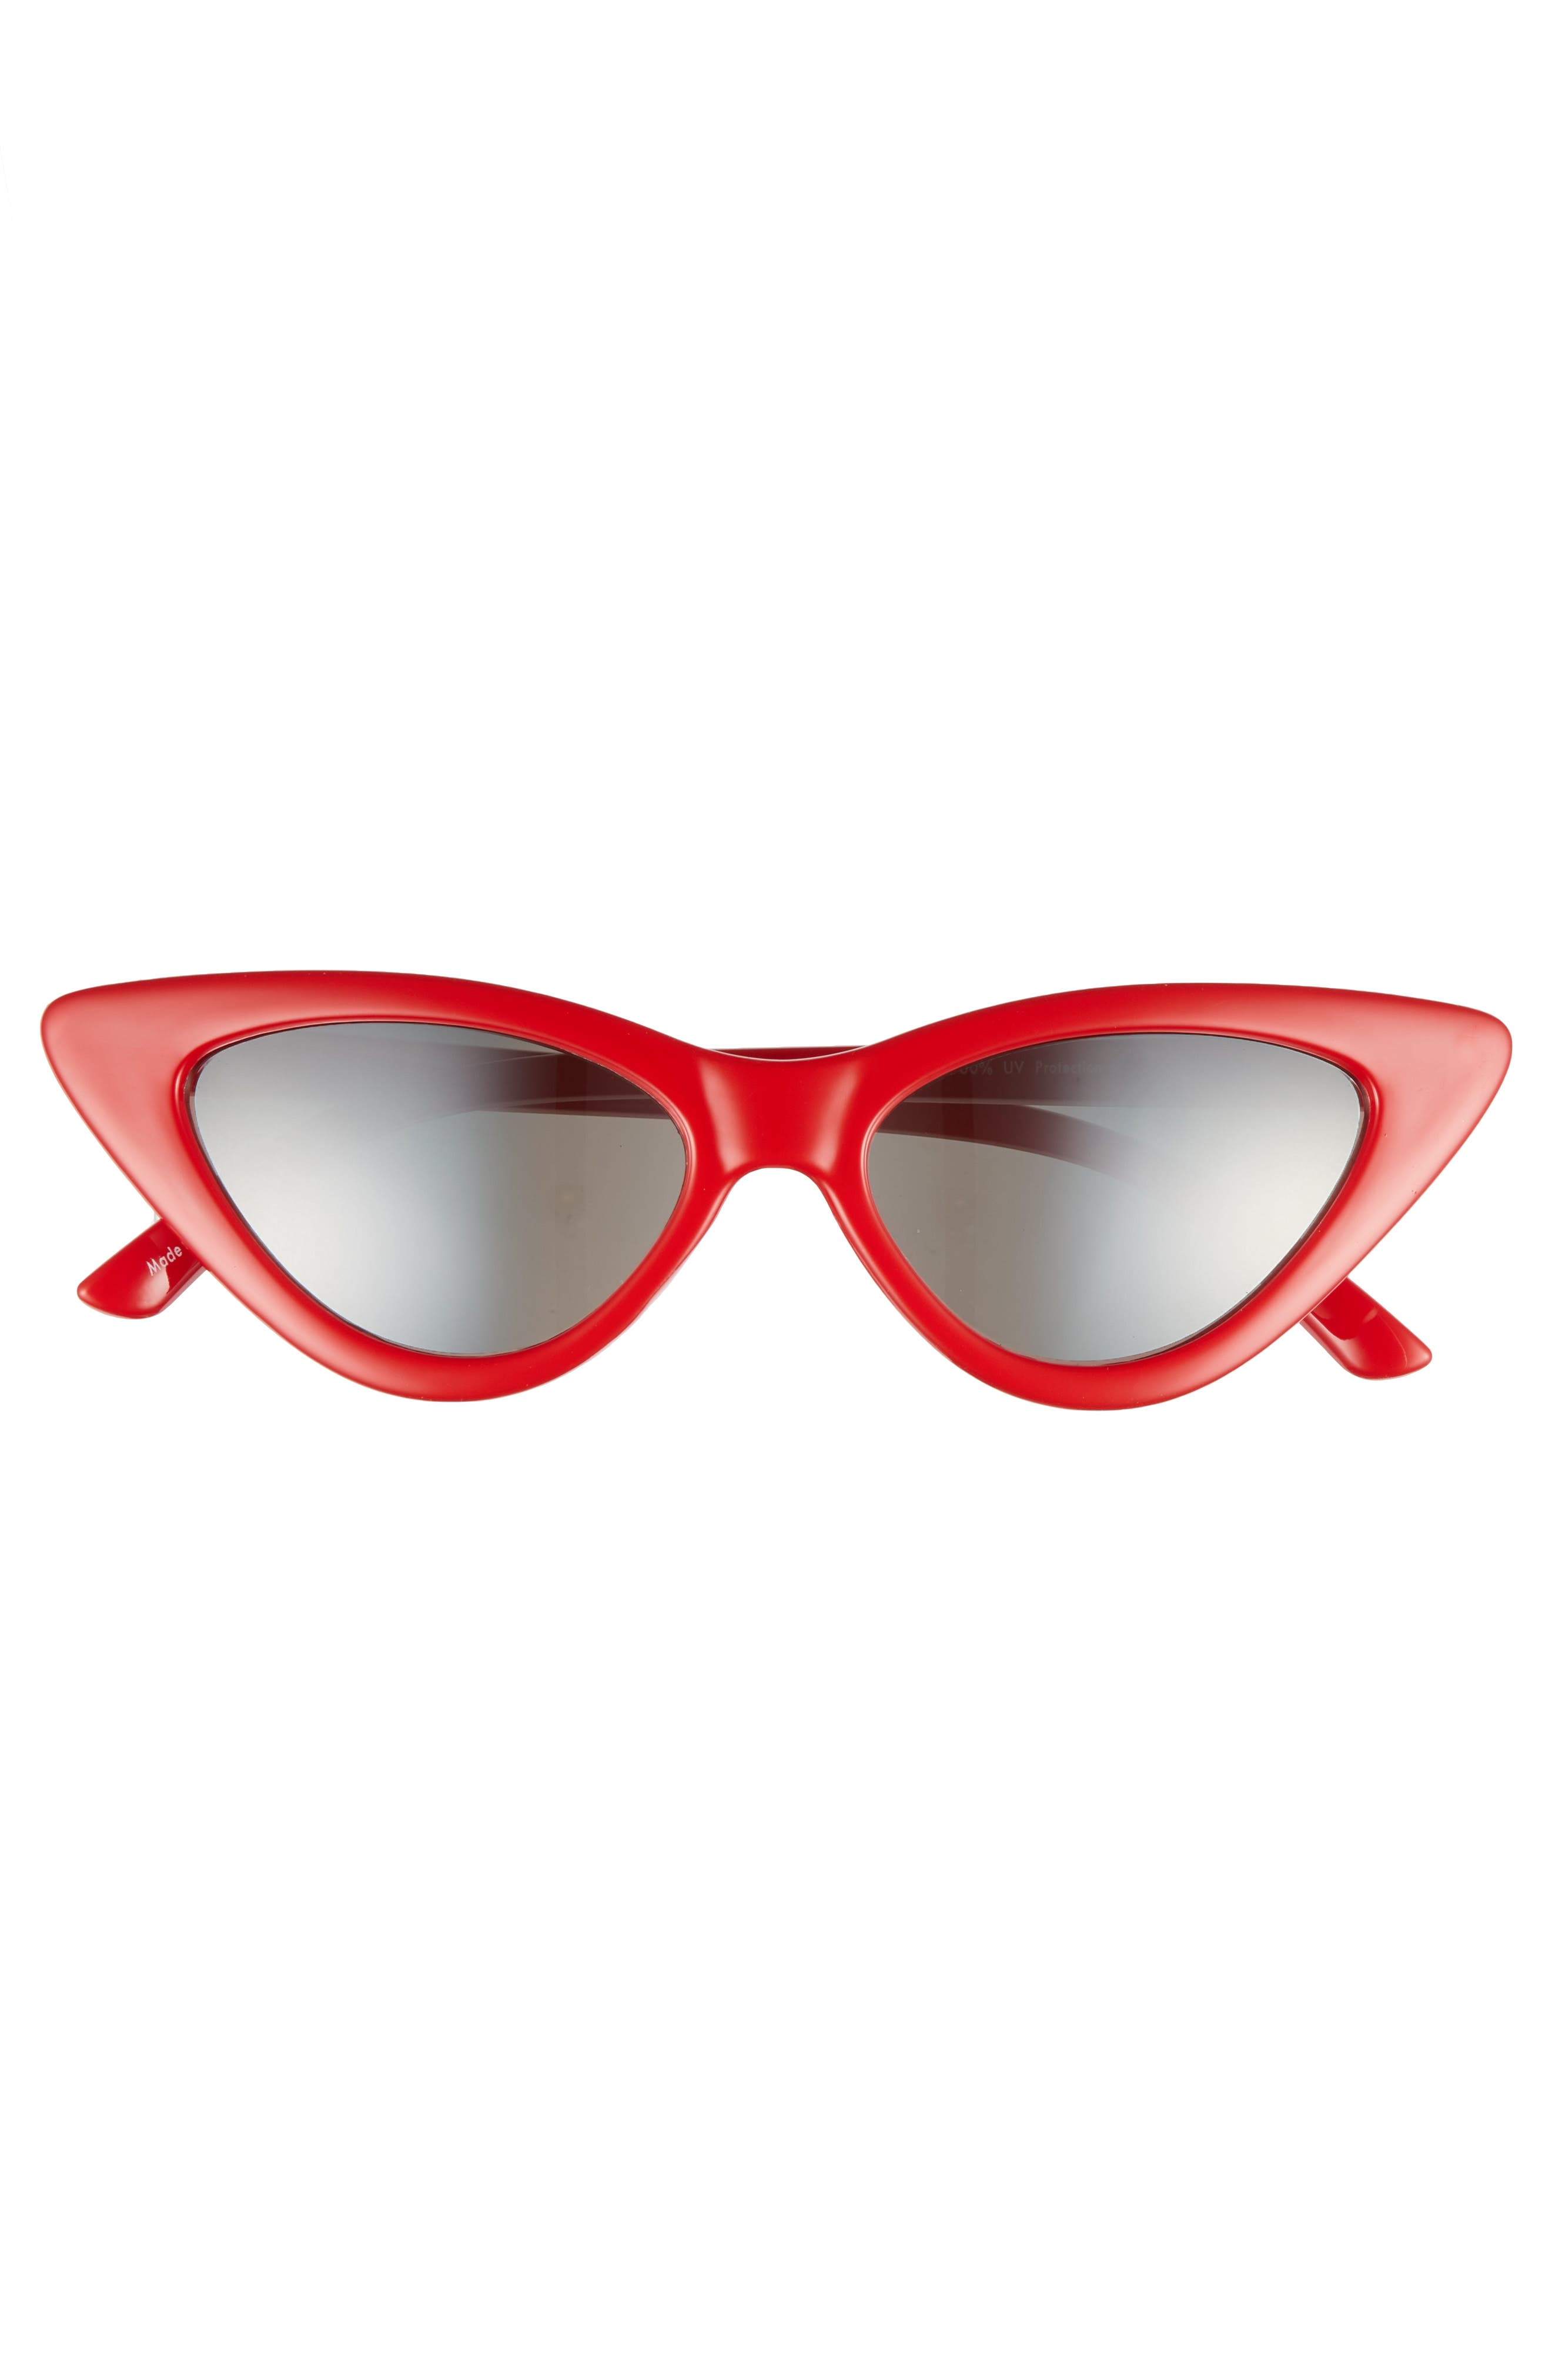 62mm Cat Eye Sunglasses,                             Alternate thumbnail 3, color,                             Red/ Silver